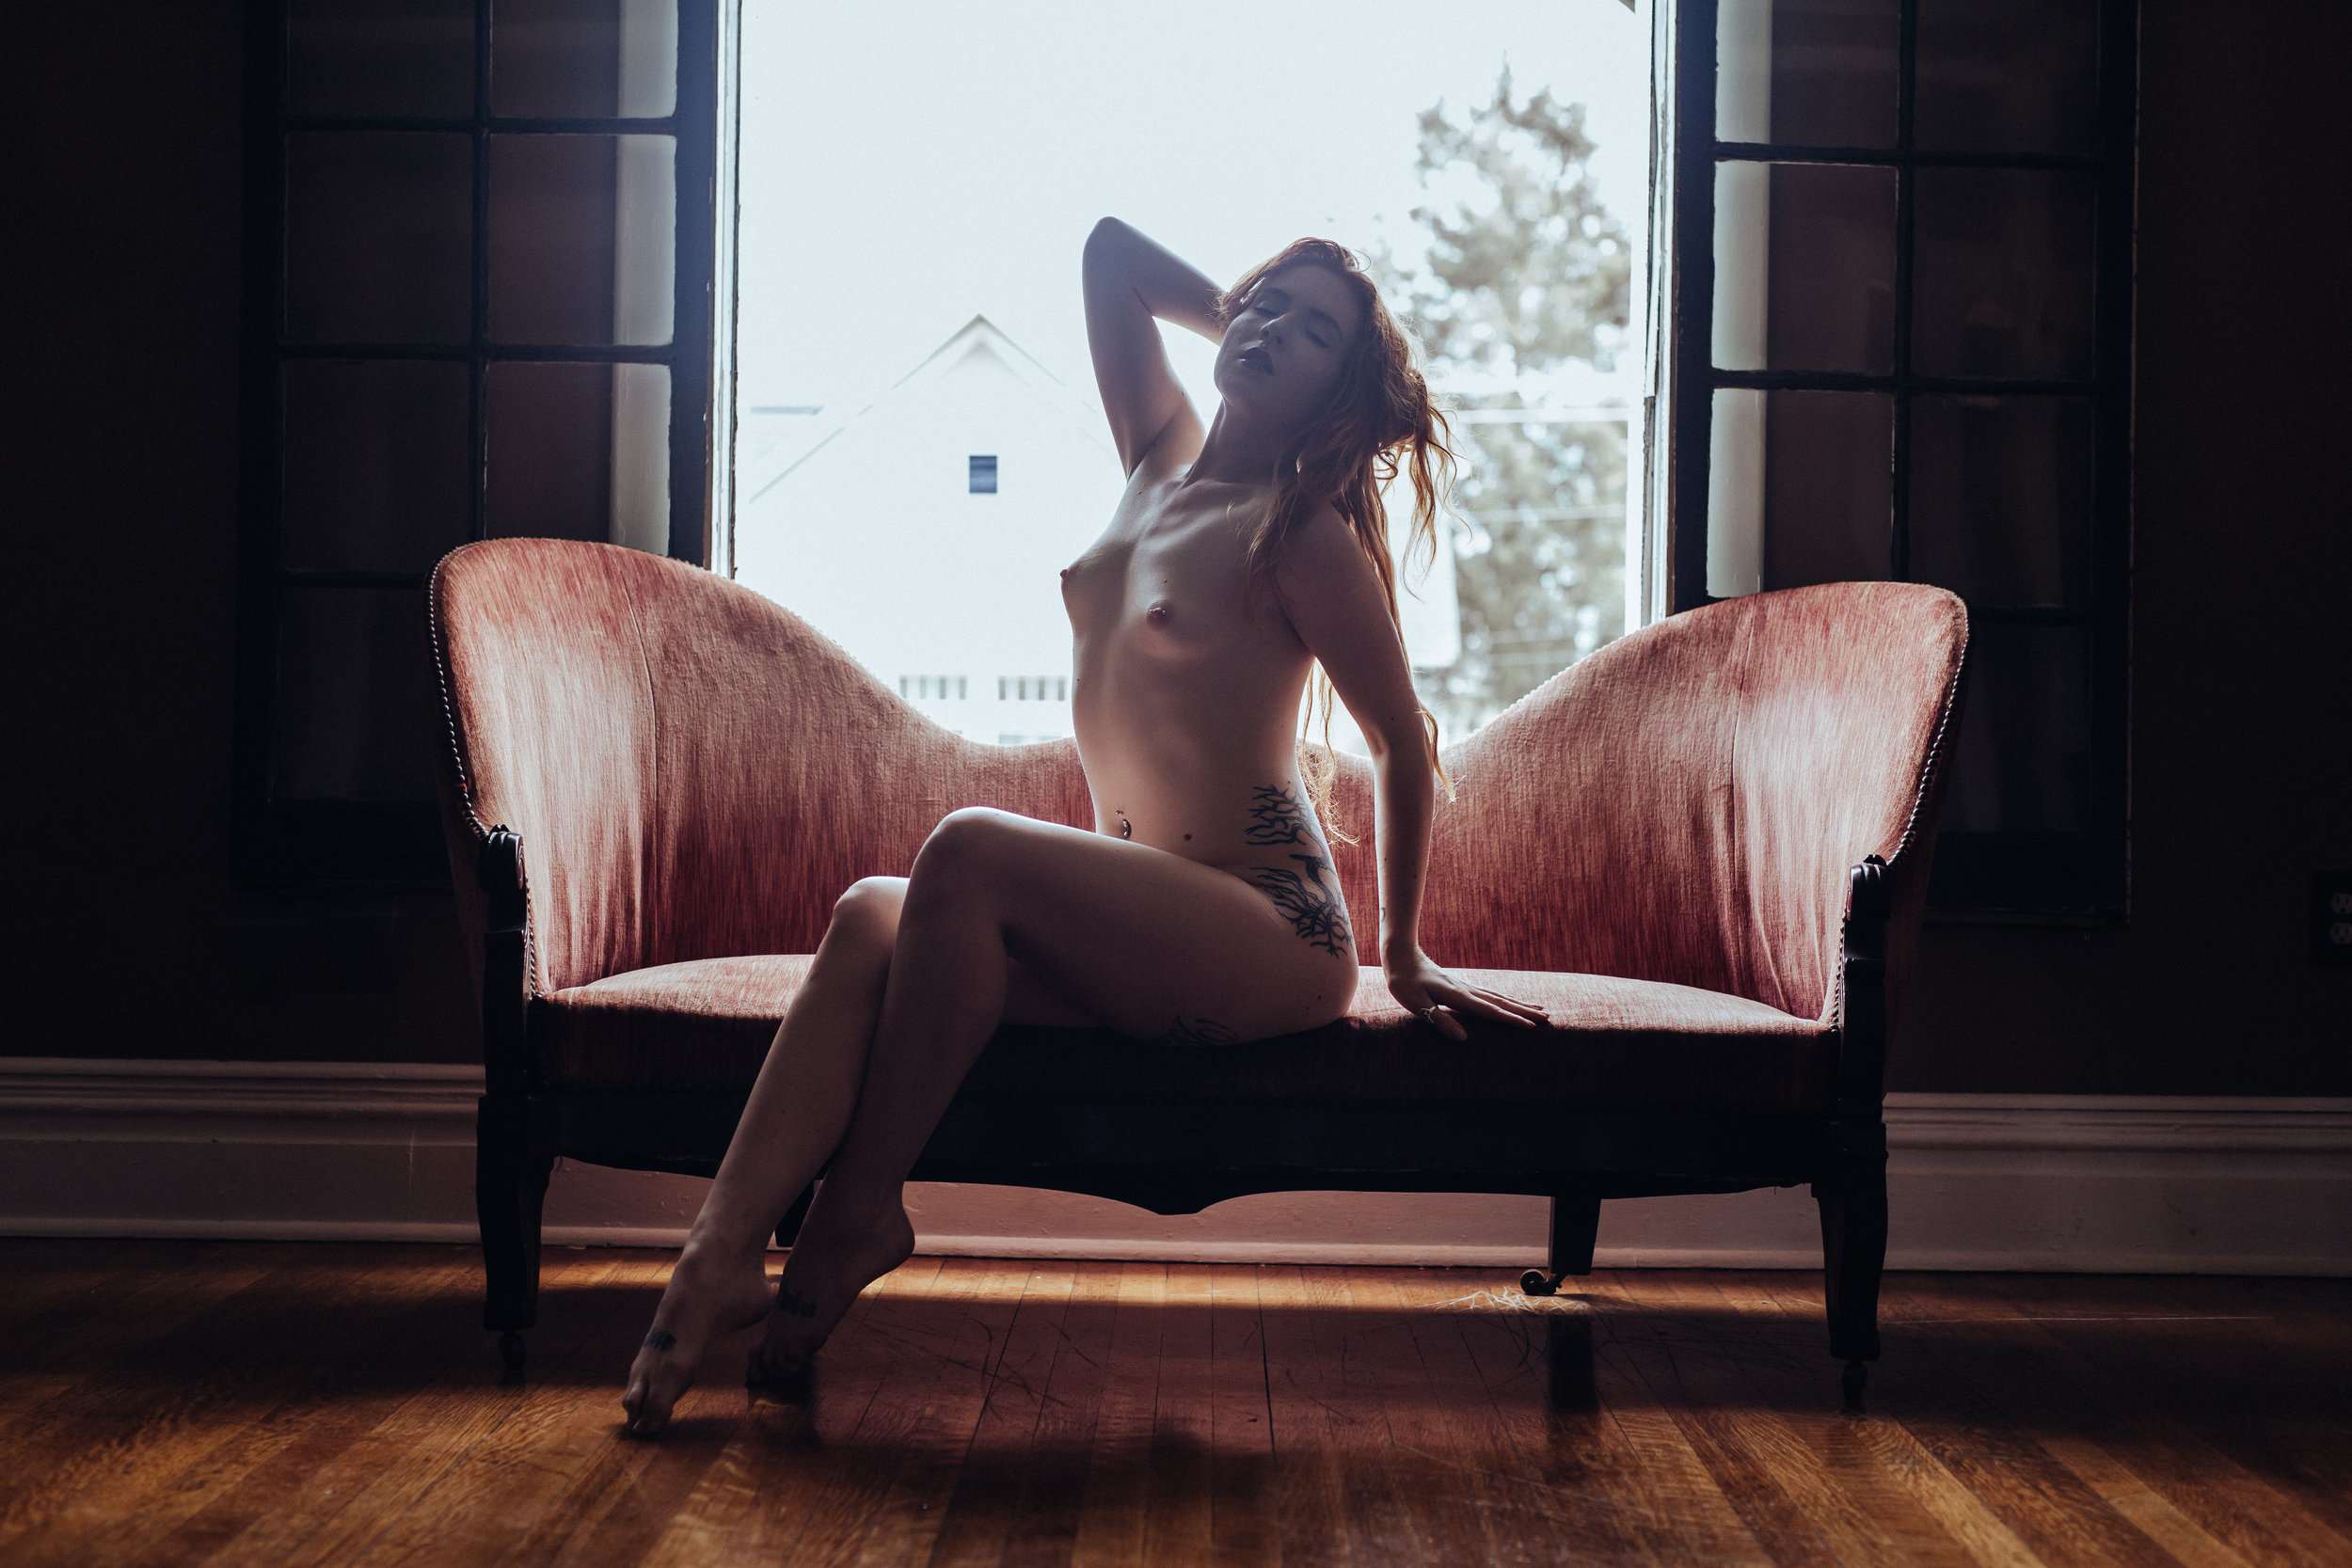 Lilith in Chattanooga - NaturallyBoudoir - April 1 2018-4772.jpg